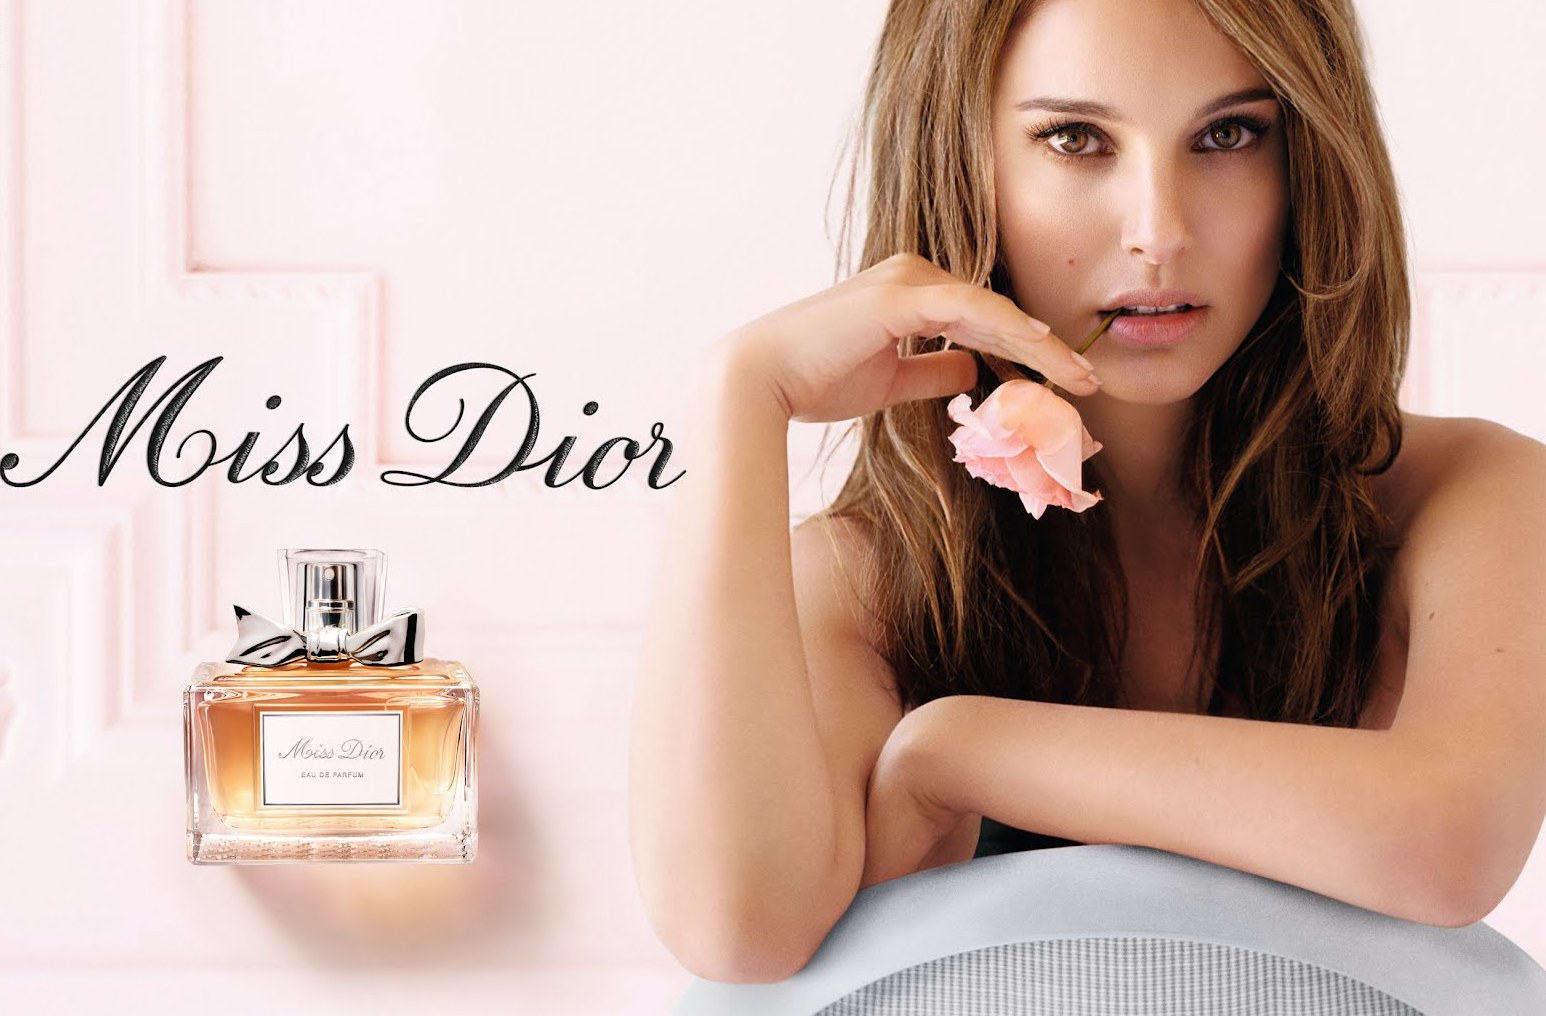 Top 15 Best Dior Perfumes For Women Perfumes Stuff